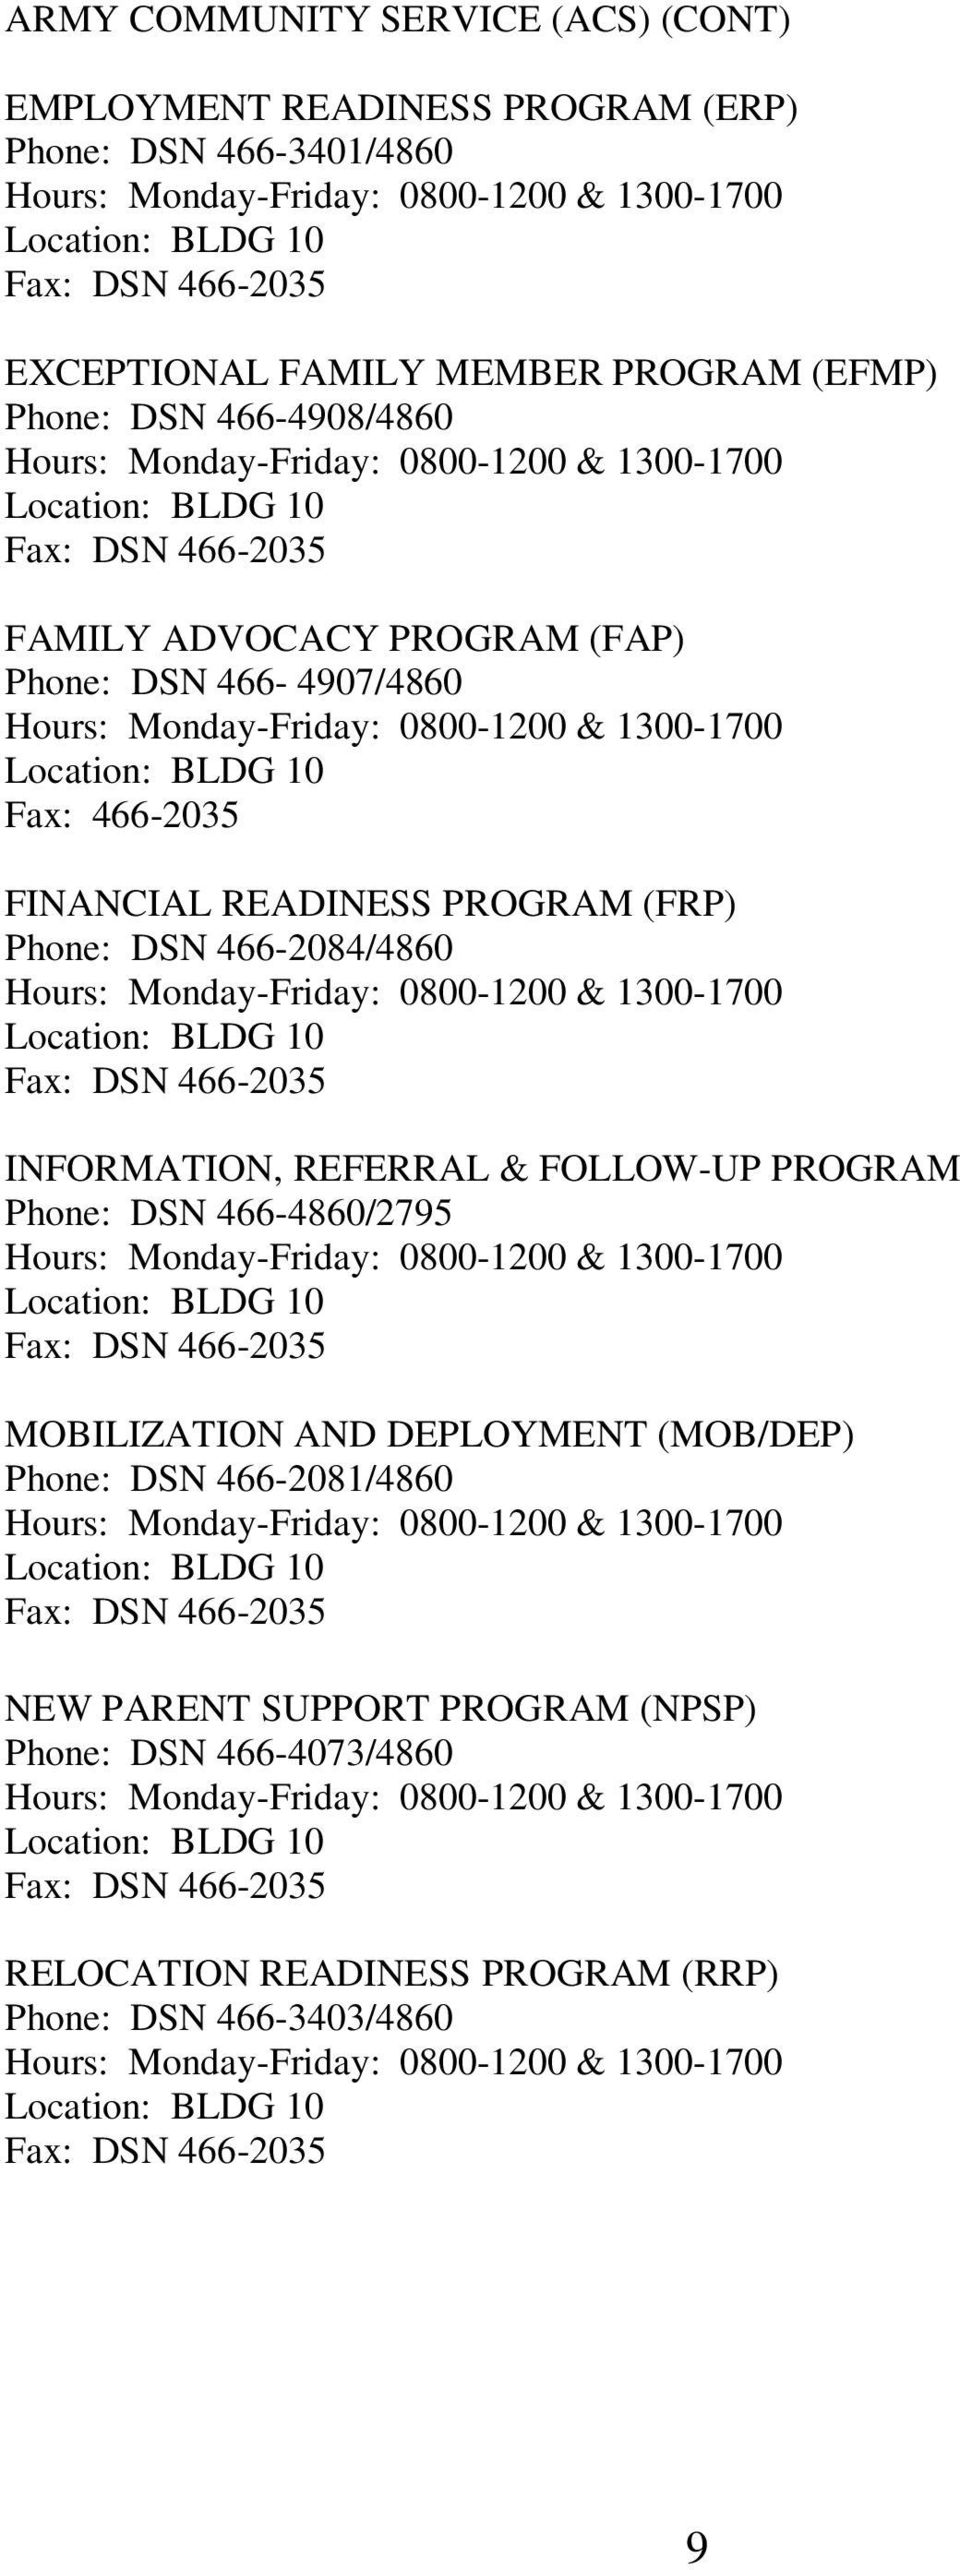 FINANCIAL READINESS PROGRAM (FRP) Phone: DSN 466-2084/4860 Hours: Monday-Friday: 0800-1200 & 1300-1700 Fax: DSN 466-2035 INFORMATION, REFERRAL & FOLLOW-UP PROGRAM Phone: DSN 466-4860/2795 Hours: